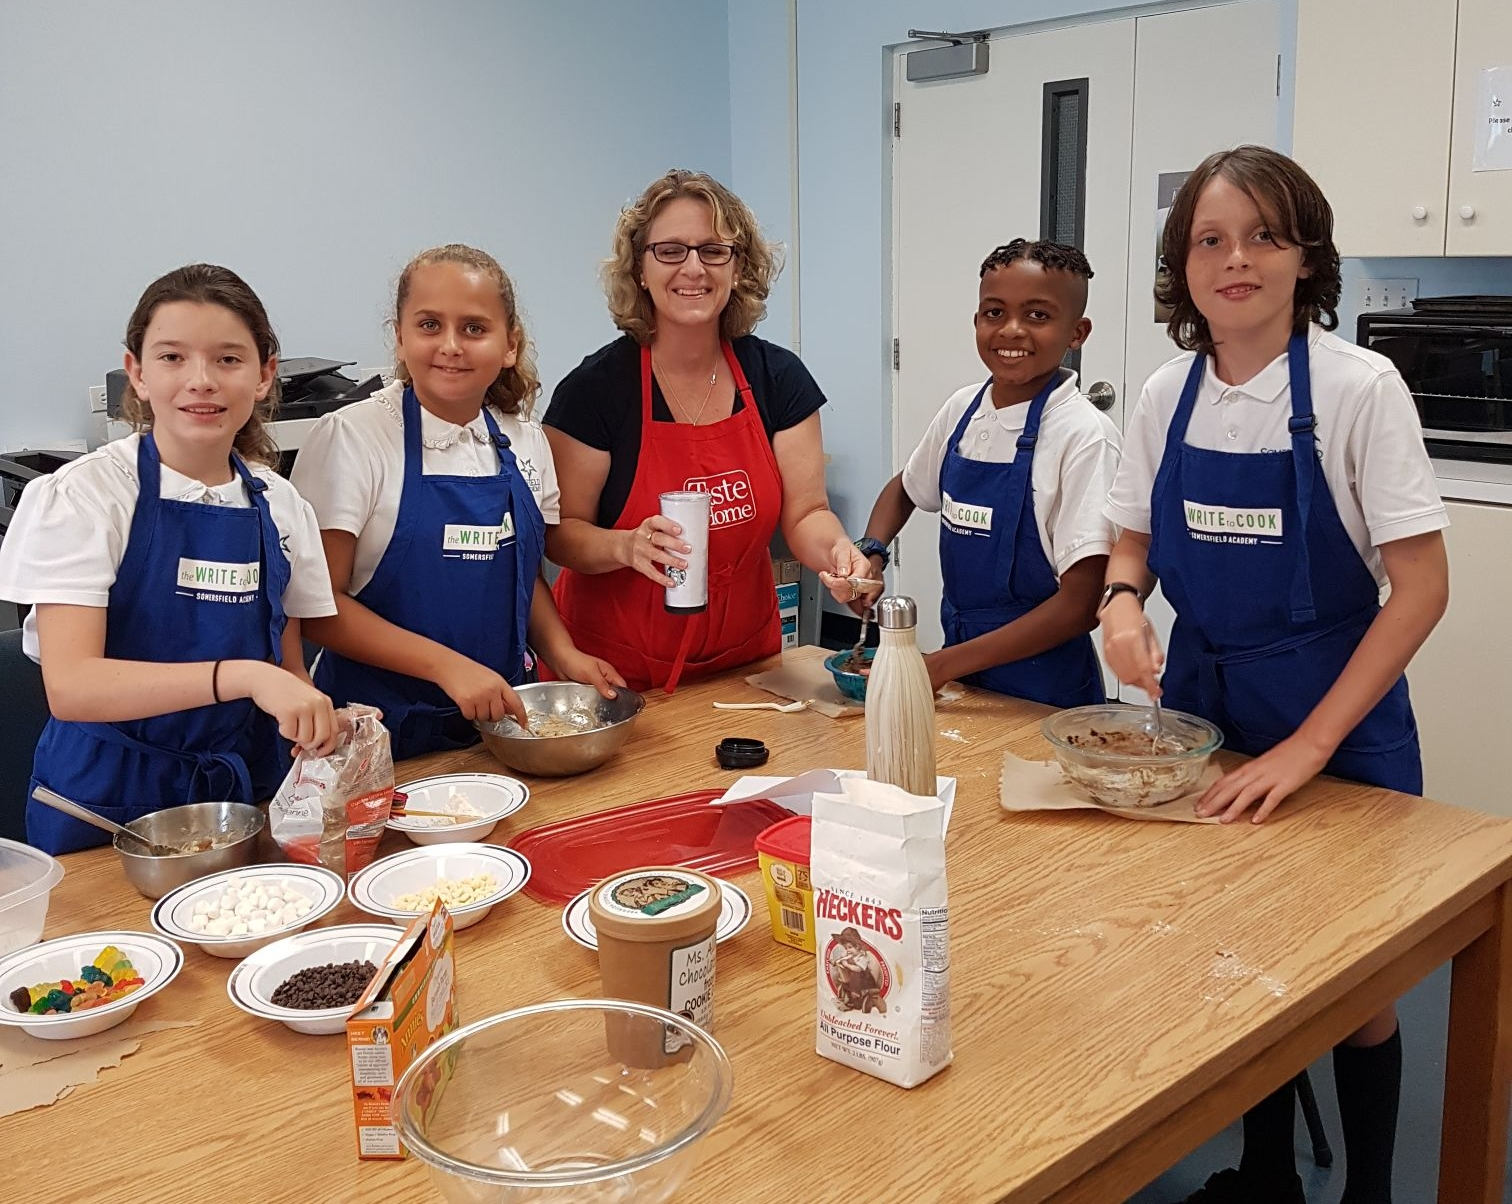 Mrs. Resnik shares her edible cookie dough recipe with the chefs!